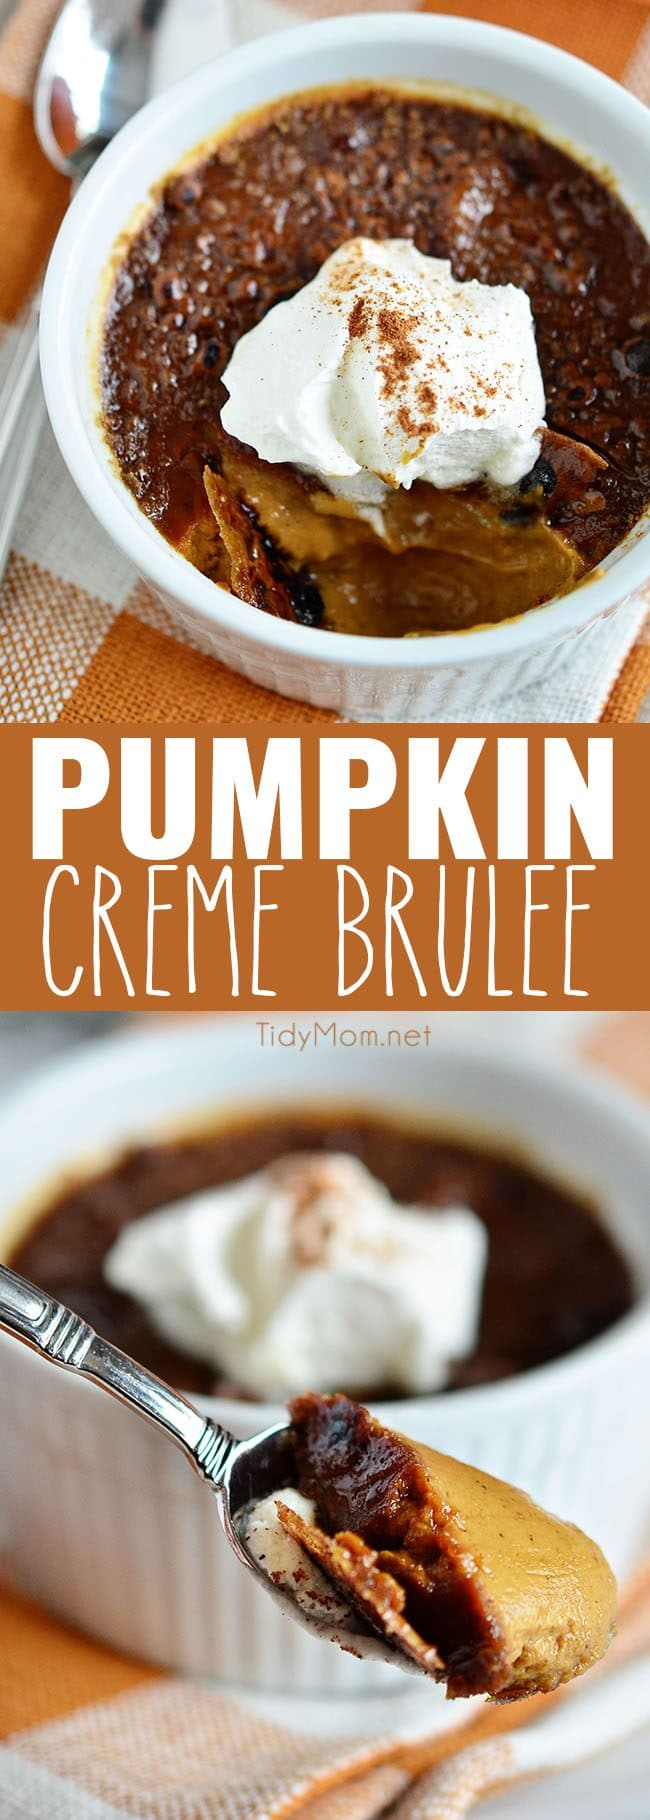 Pumpkin Crème Brûlée photo collage